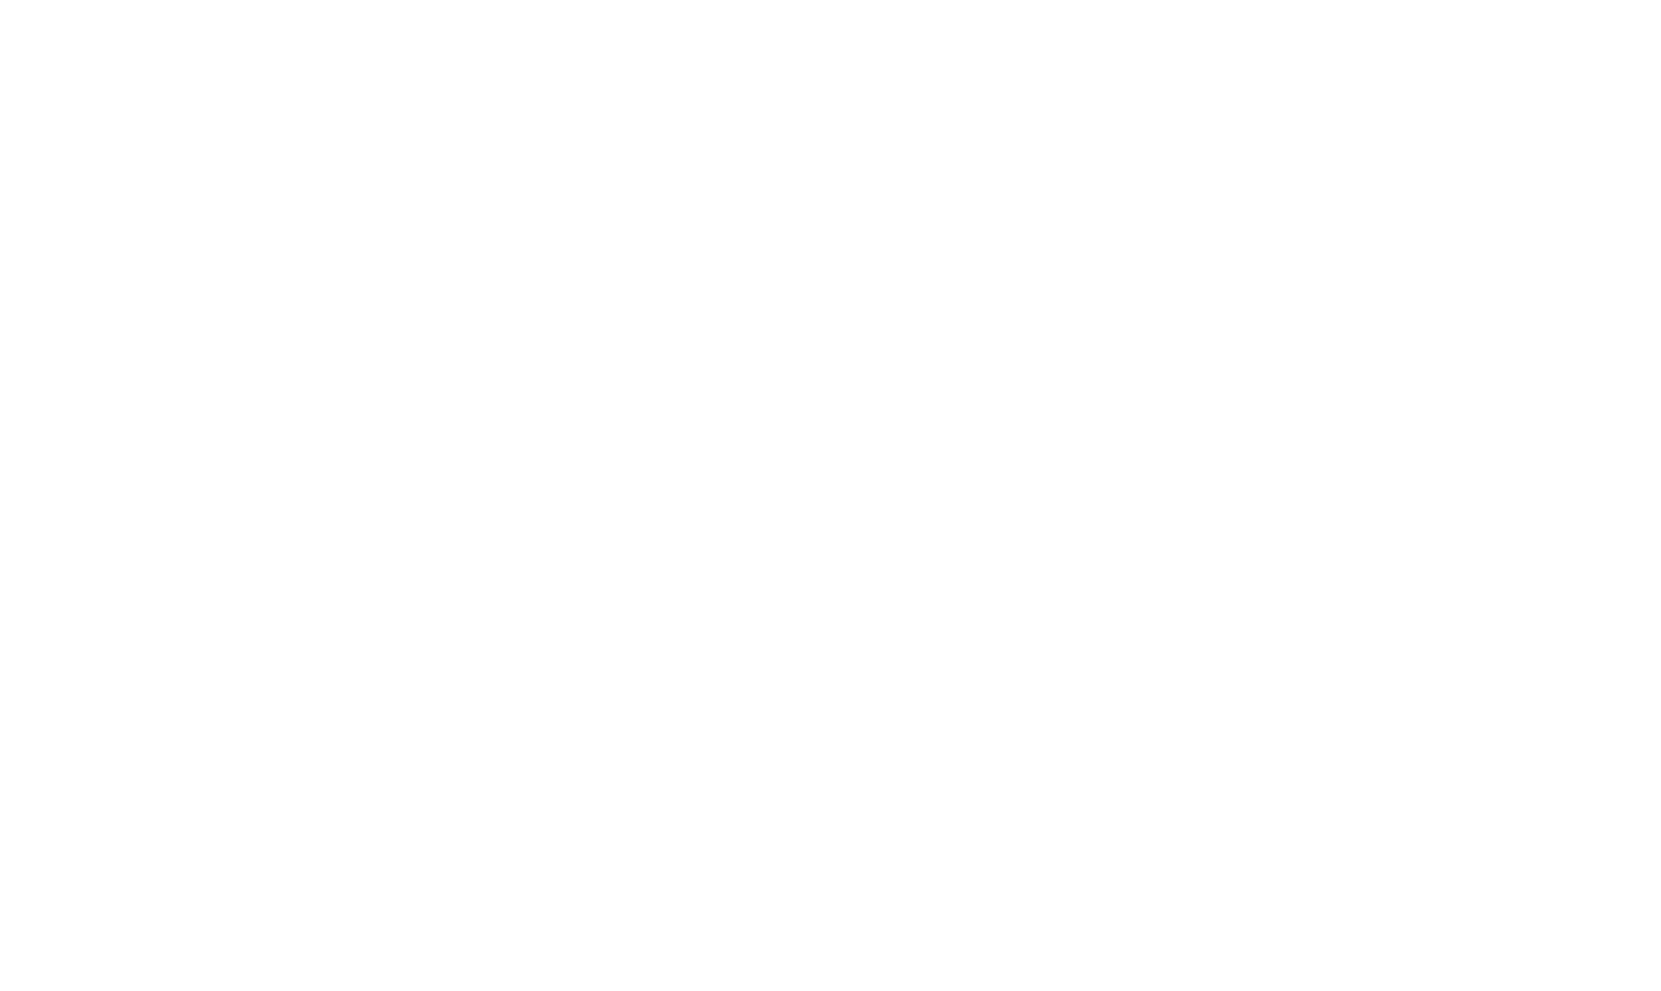 شعارInner West Council (Leichhardt)